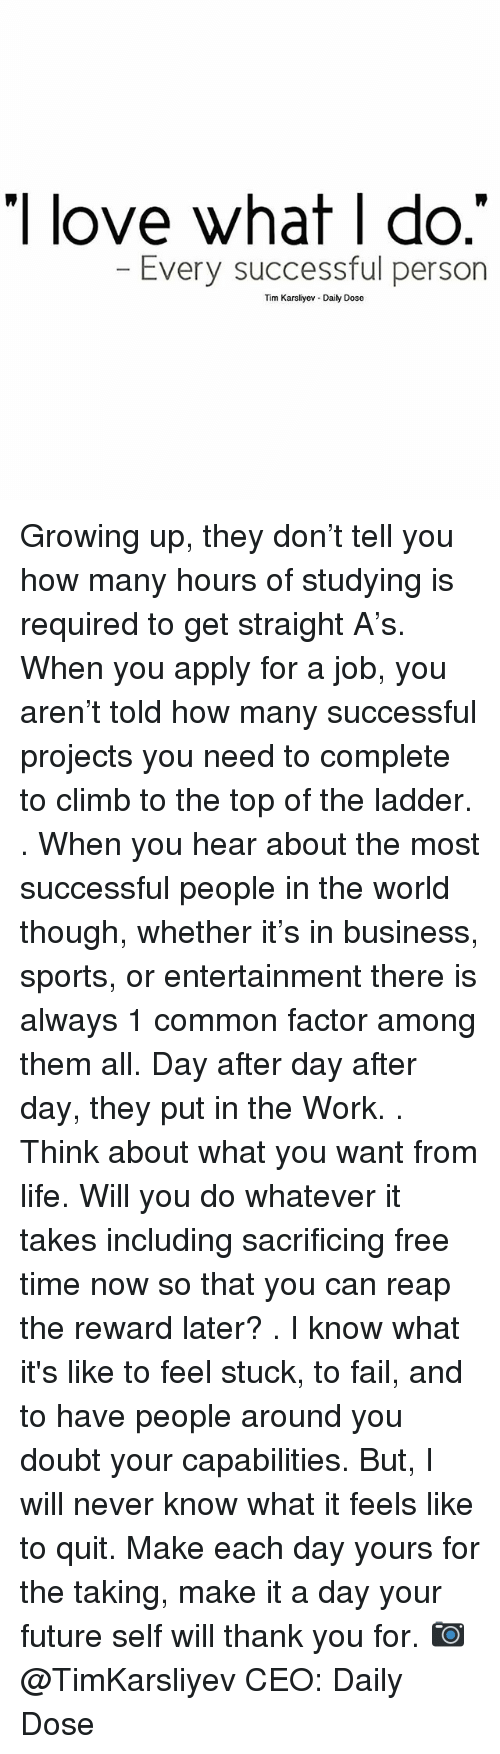 ladders: I love what I do  Every successful person  Tim Karsliyev Daily Dose Growing up, they don't tell you how many hours of studying is required to get straight A's. When you apply for a job, you aren't told how many successful projects you need to complete to climb to the top of the ladder. . When you hear about the most successful people in the world though, whether it's in business, sports, or entertainment there is always 1 common factor among them all. Day after day after day, they put in the Work. . Think about what you want from life. Will you do whatever it takes including sacrificing free time now so that you can reap the reward later? . I know what it's like to feel stuck, to fail, and to have people around you doubt your capabilities. But, I will never know what it feels like to quit. Make each day yours for the taking, make it a day your future self will thank you for. 📷 @TimKarsliyev CEO: Daily Dose